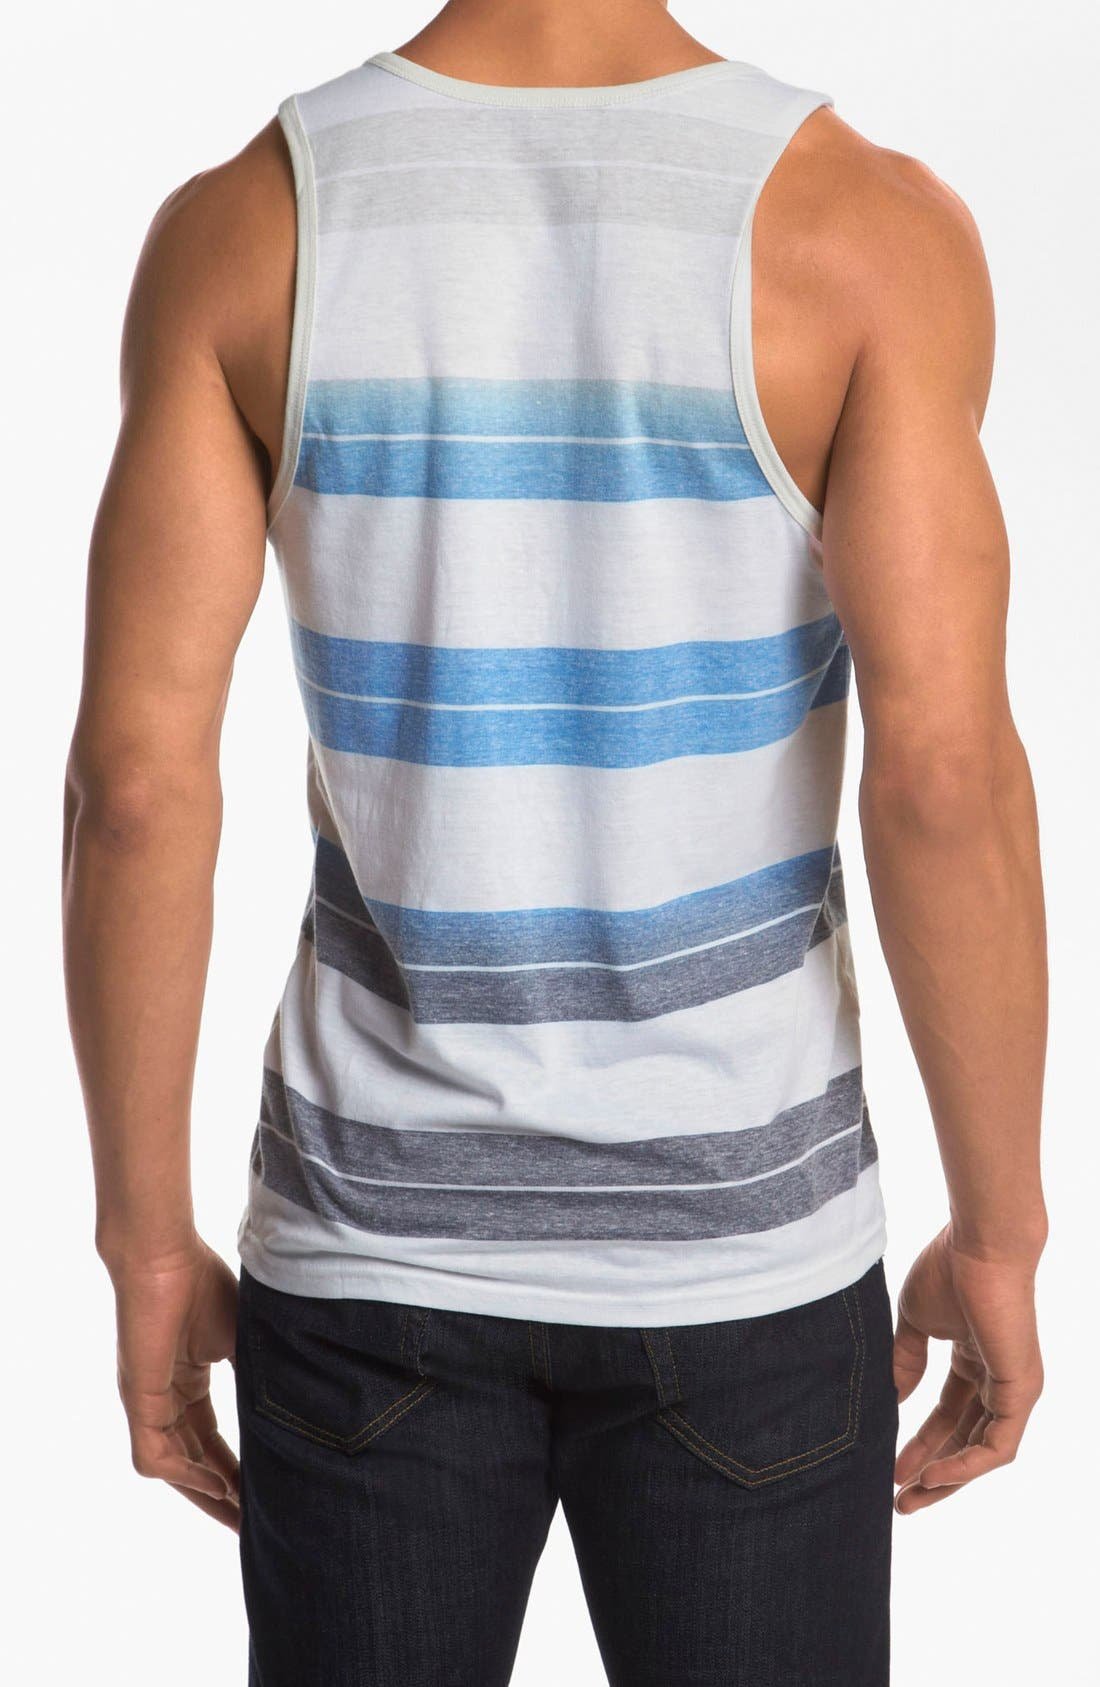 HURLEY,                             'Hawk 2.0' Tank Top,                             Alternate thumbnail 3, color,                             096